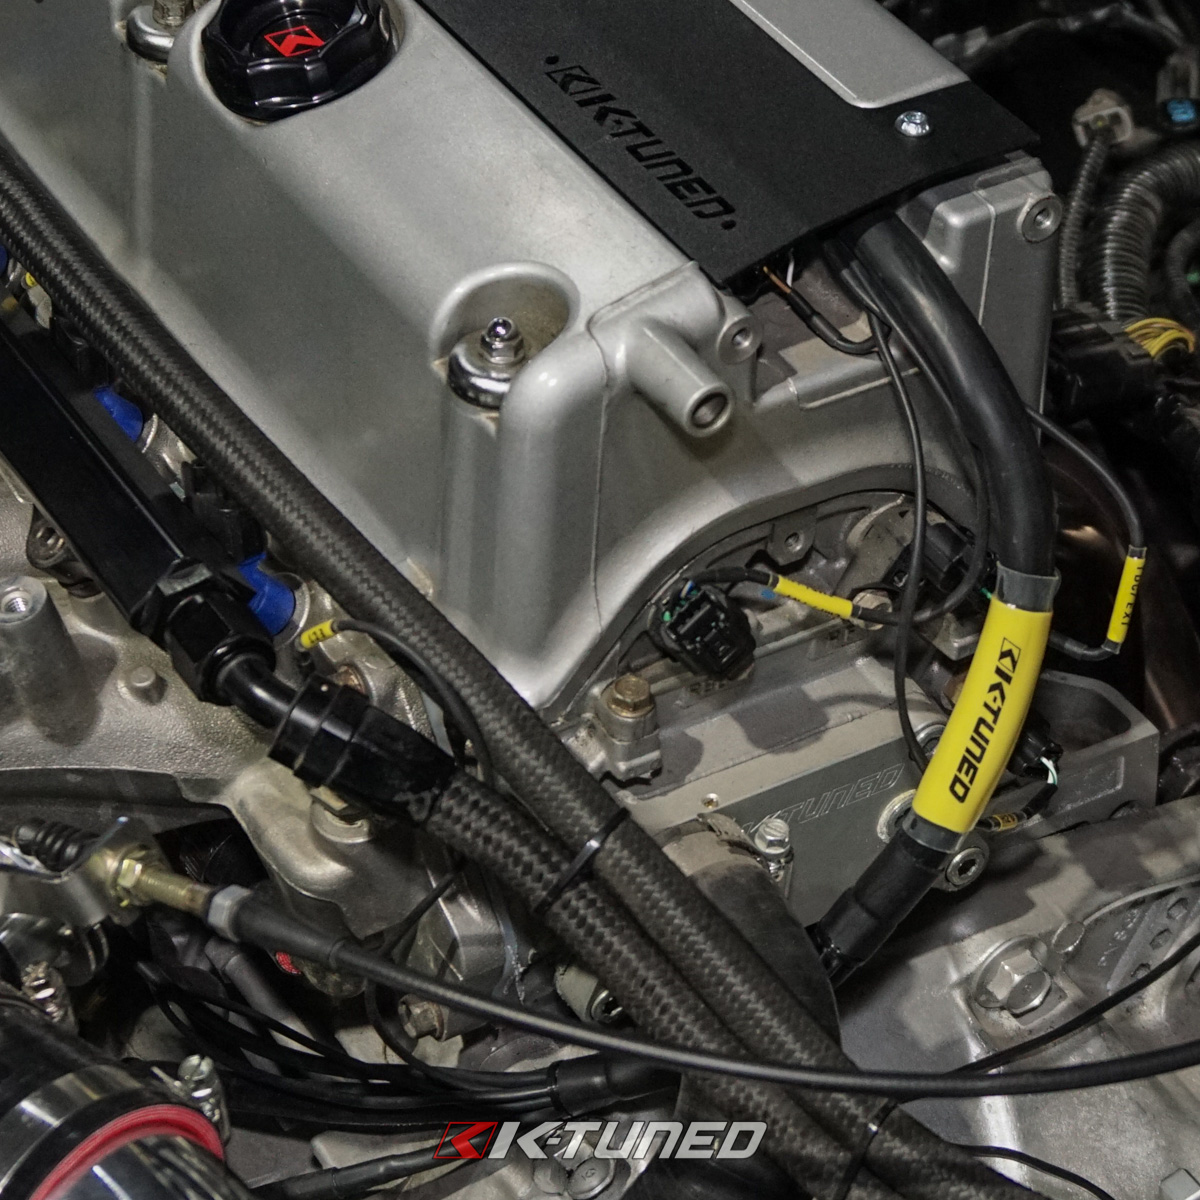 hight resolution of k series tucked engine harness quick view